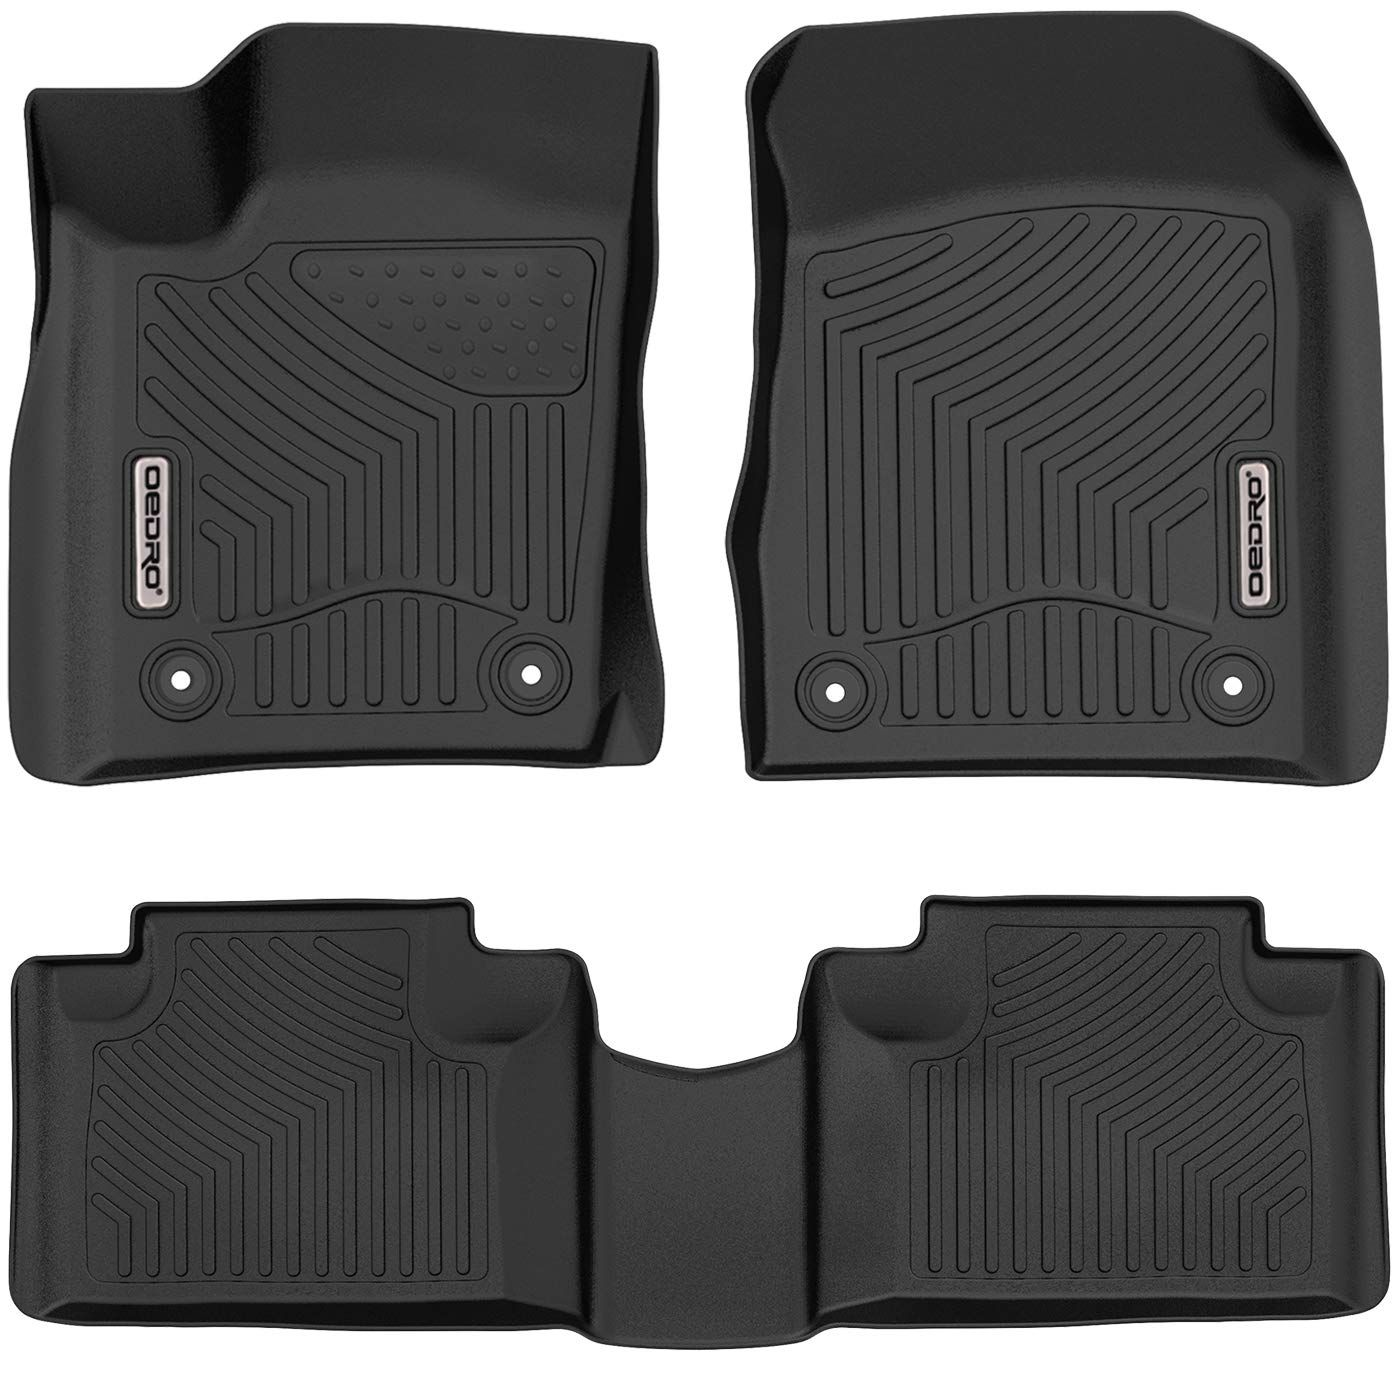 Rear Unique Black TPE All-Weather Guard Includes 1st and 2nd Row: Front oEdRo Floor Mats Compatible for 2013-2016 Ford Fusion Energi//Titanium//Lincoln MKZ Full Set Liners